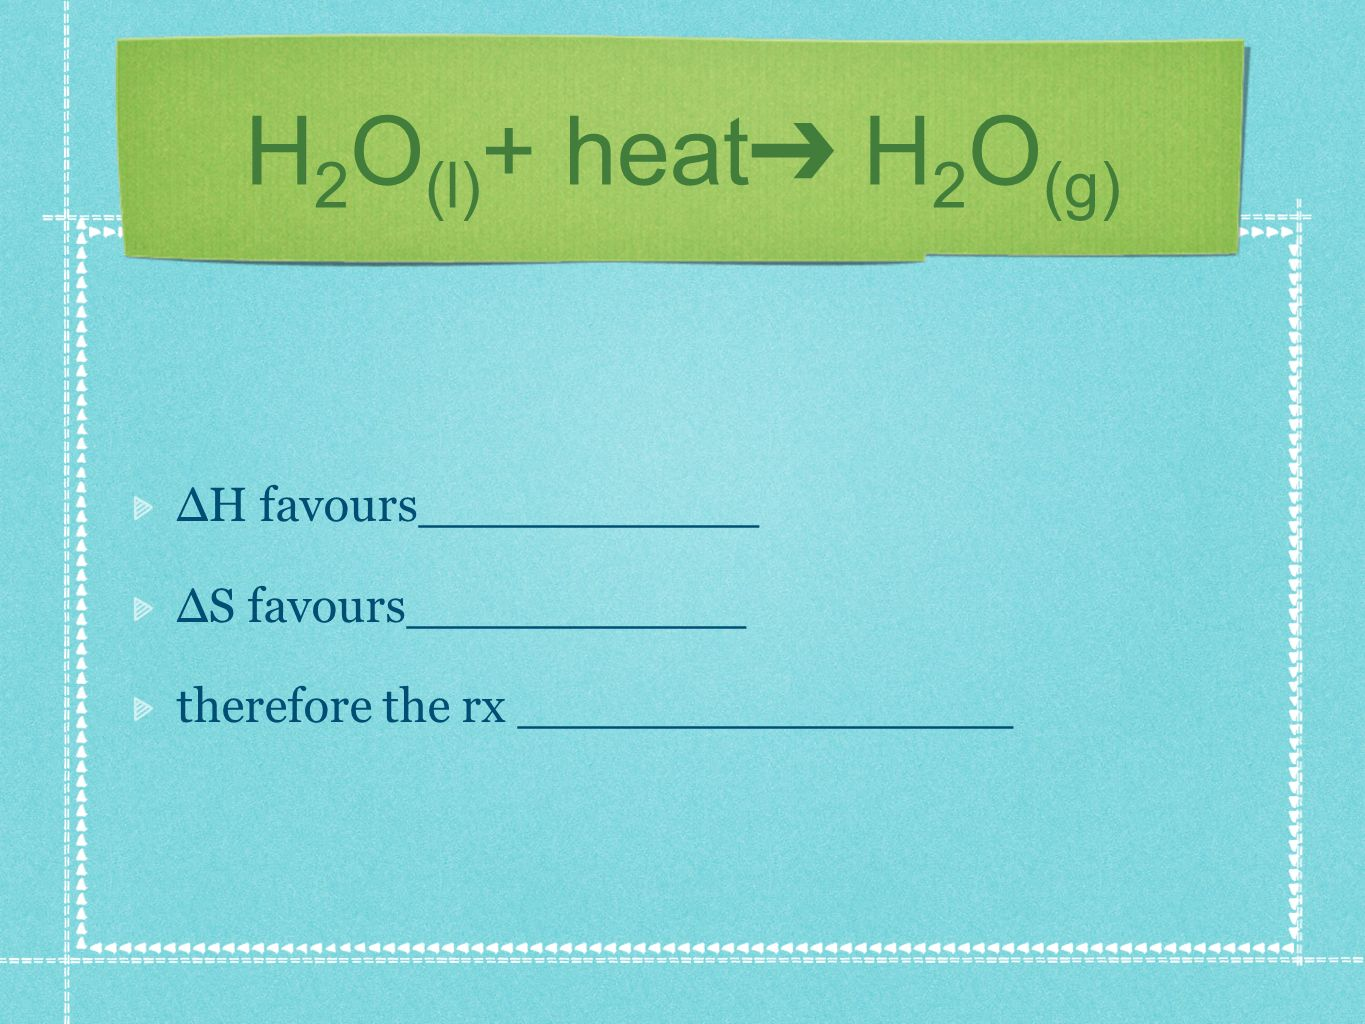 H 2 O (l) + heat H 2 O (g) H favours___________ S favours___________ therefore the rx ________________